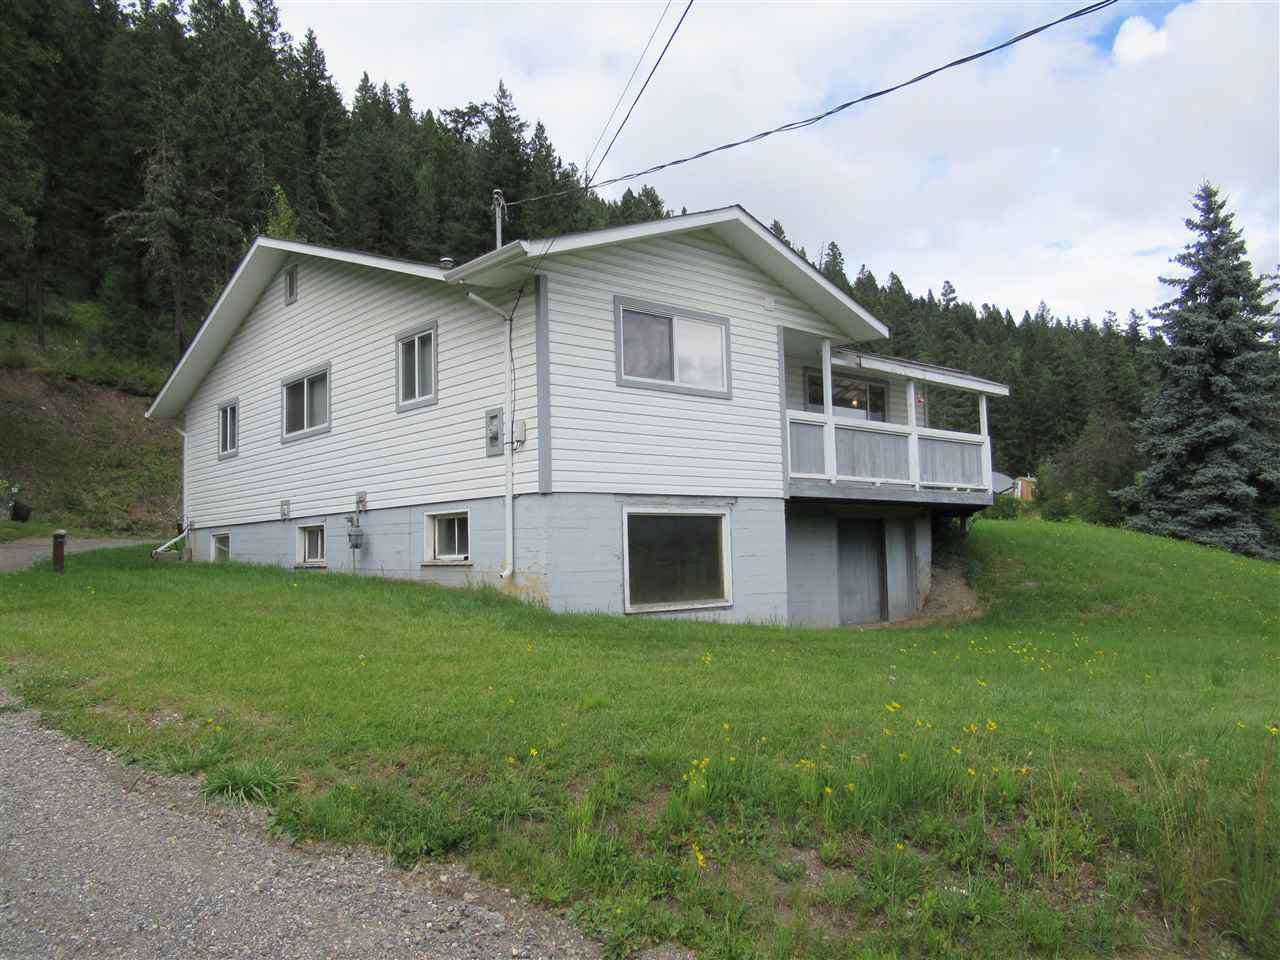 Photo 29: Photos: 3035 FIRDALE Drive in Williams Lake: Williams Lake - Rural North House for sale (Williams Lake (Zone 27))  : MLS®# R2484738